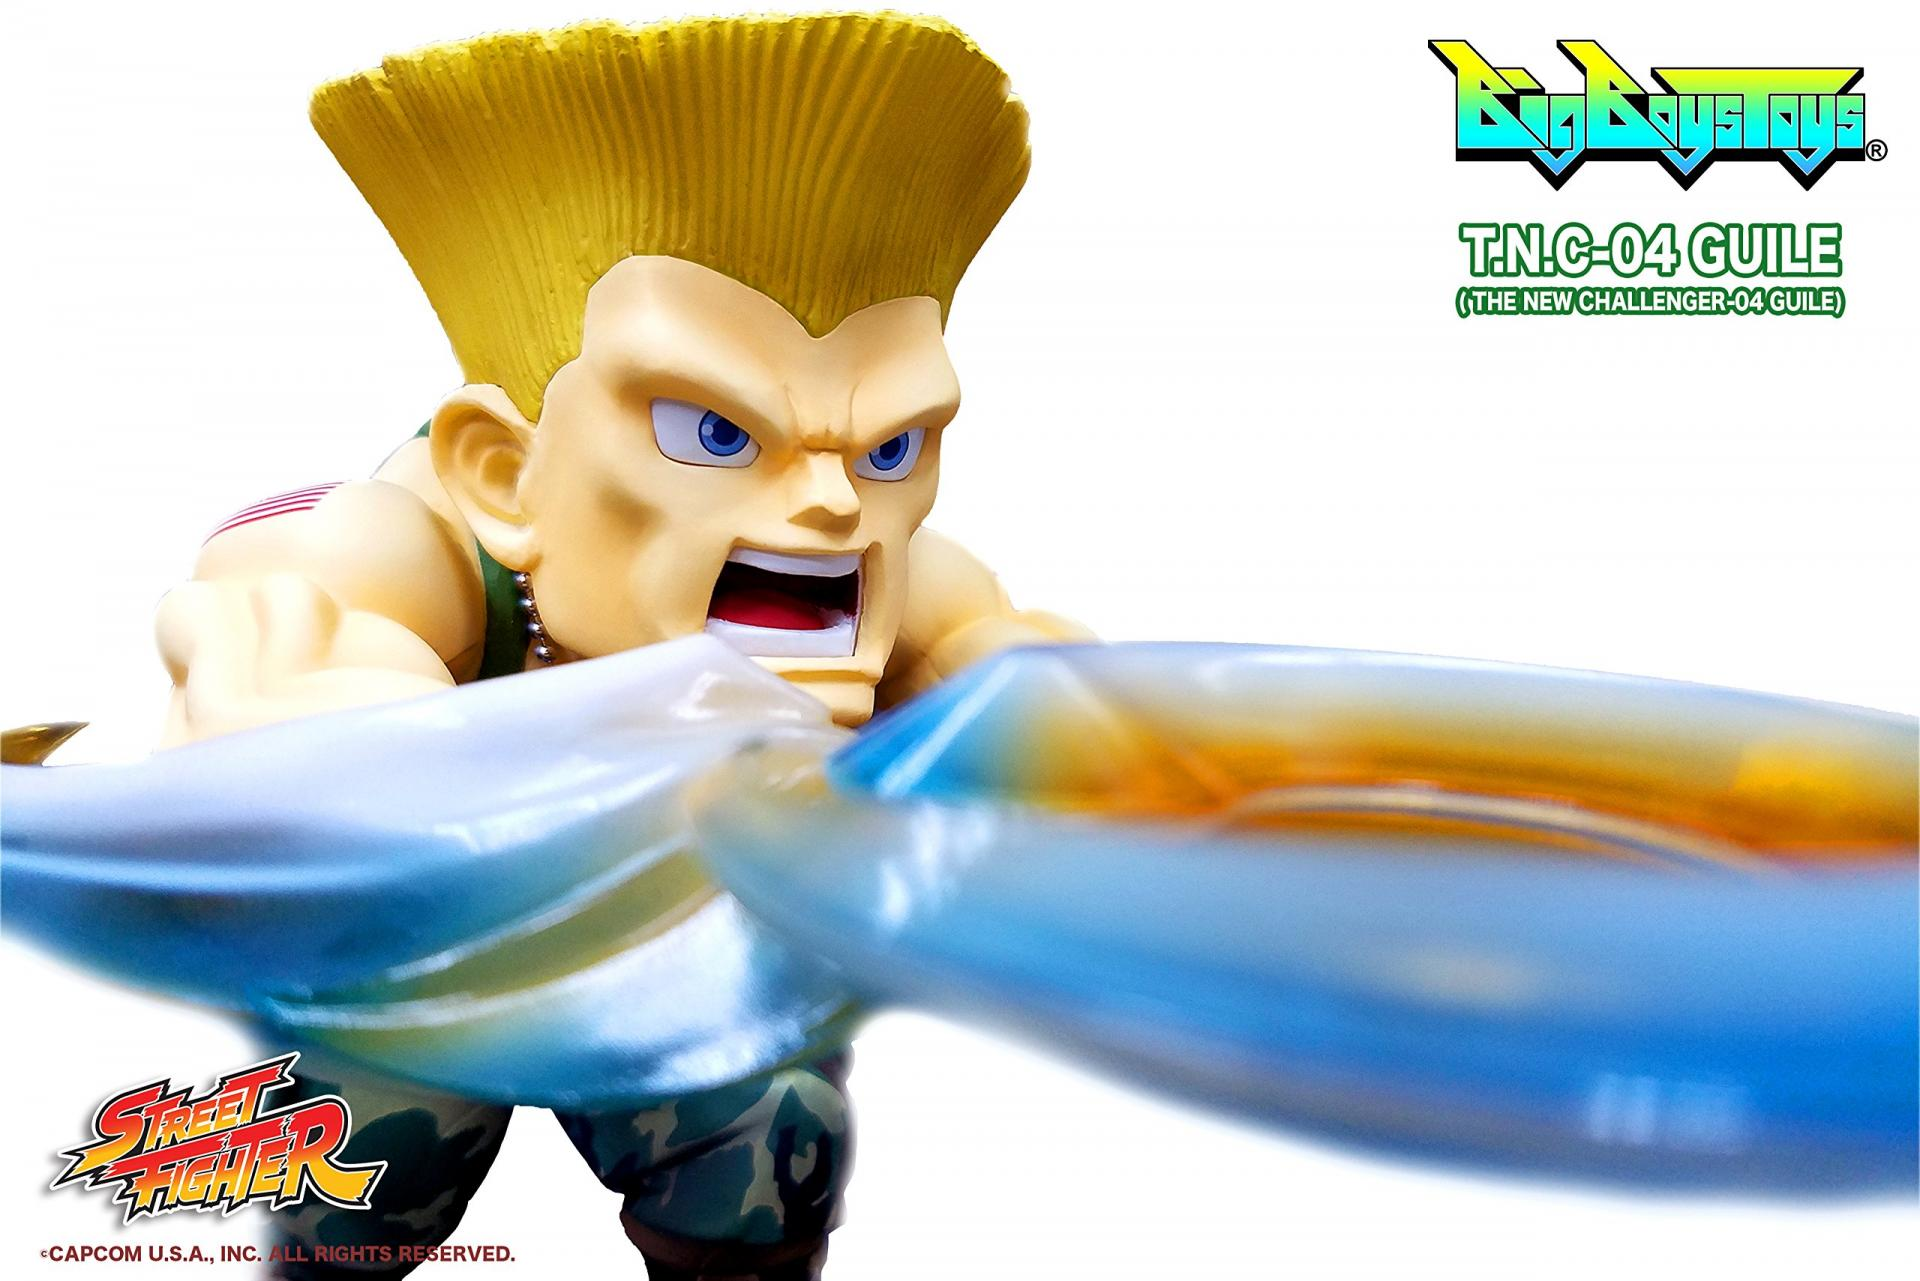 Street fighter figurine led son guile the new challenger 3